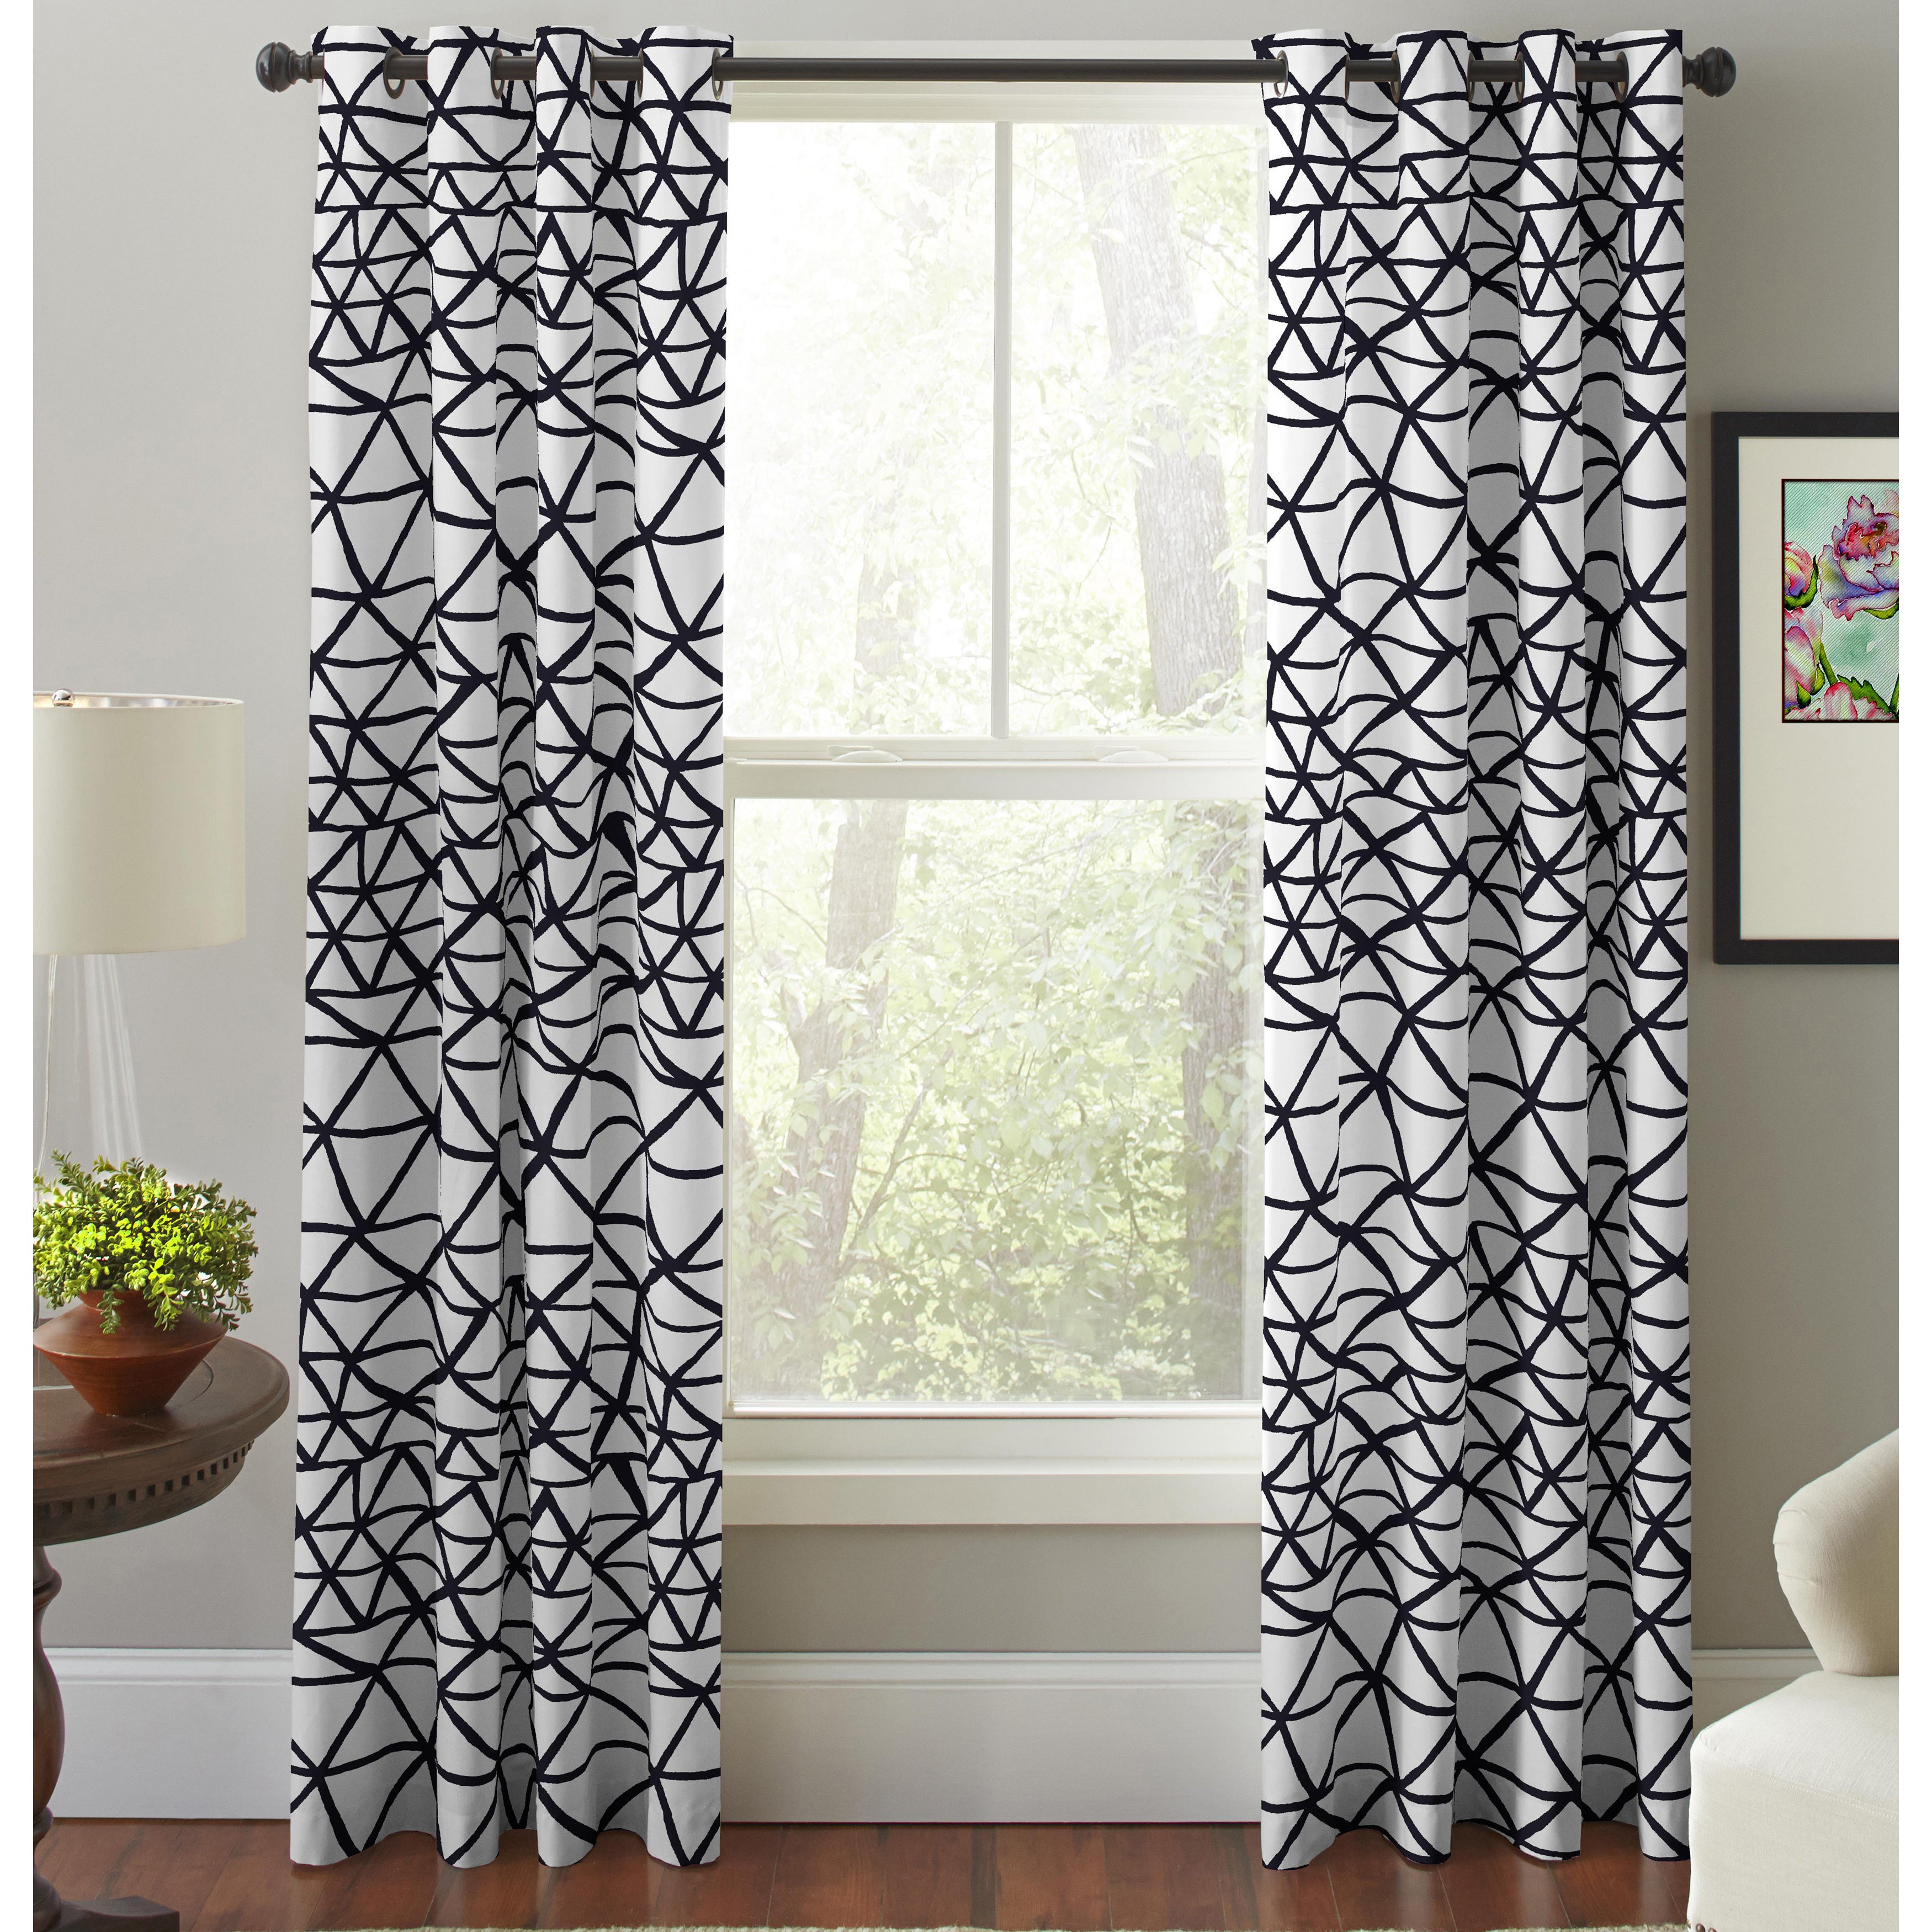 Pointhaven Bridge Black and White Cotton Printed Window C...